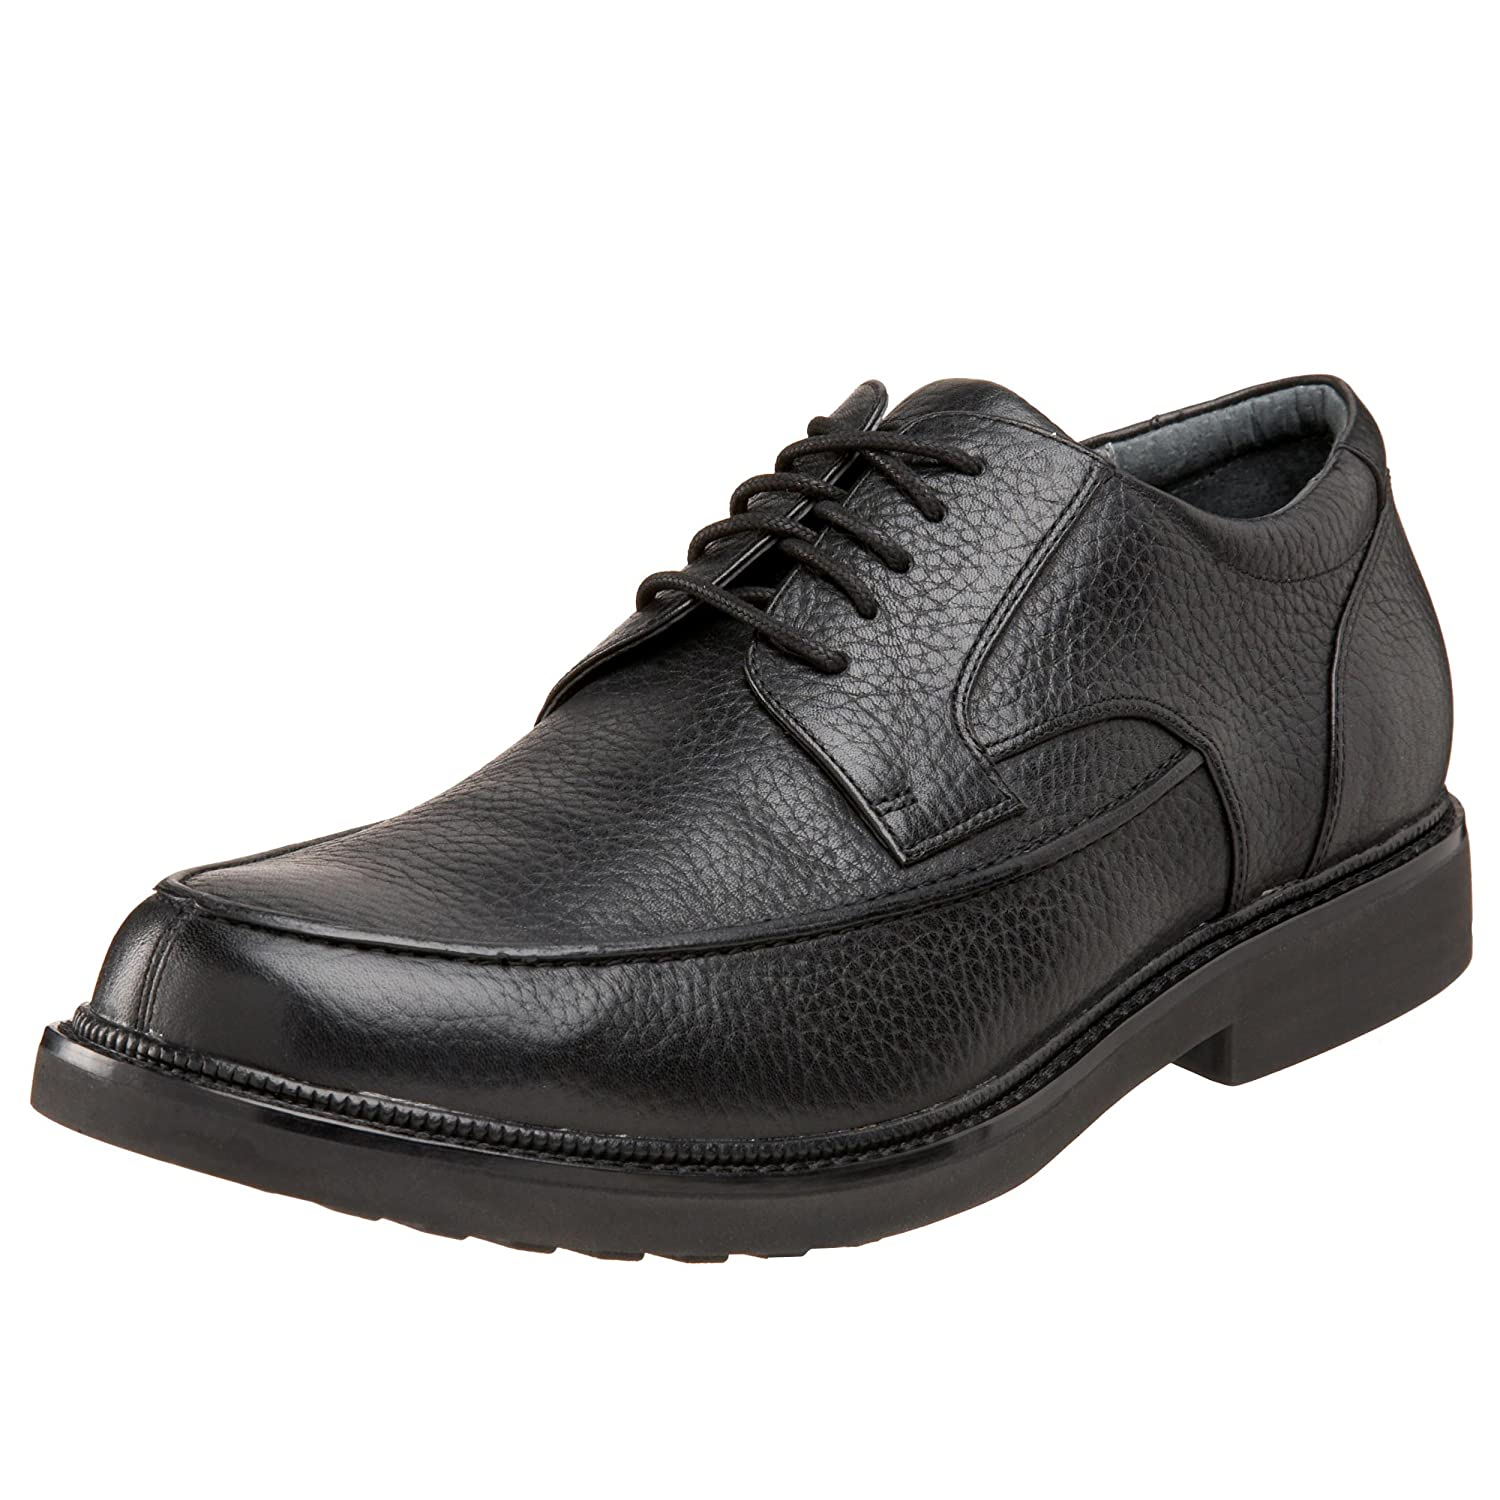 Aetrex Men's Moc Toe Oxford